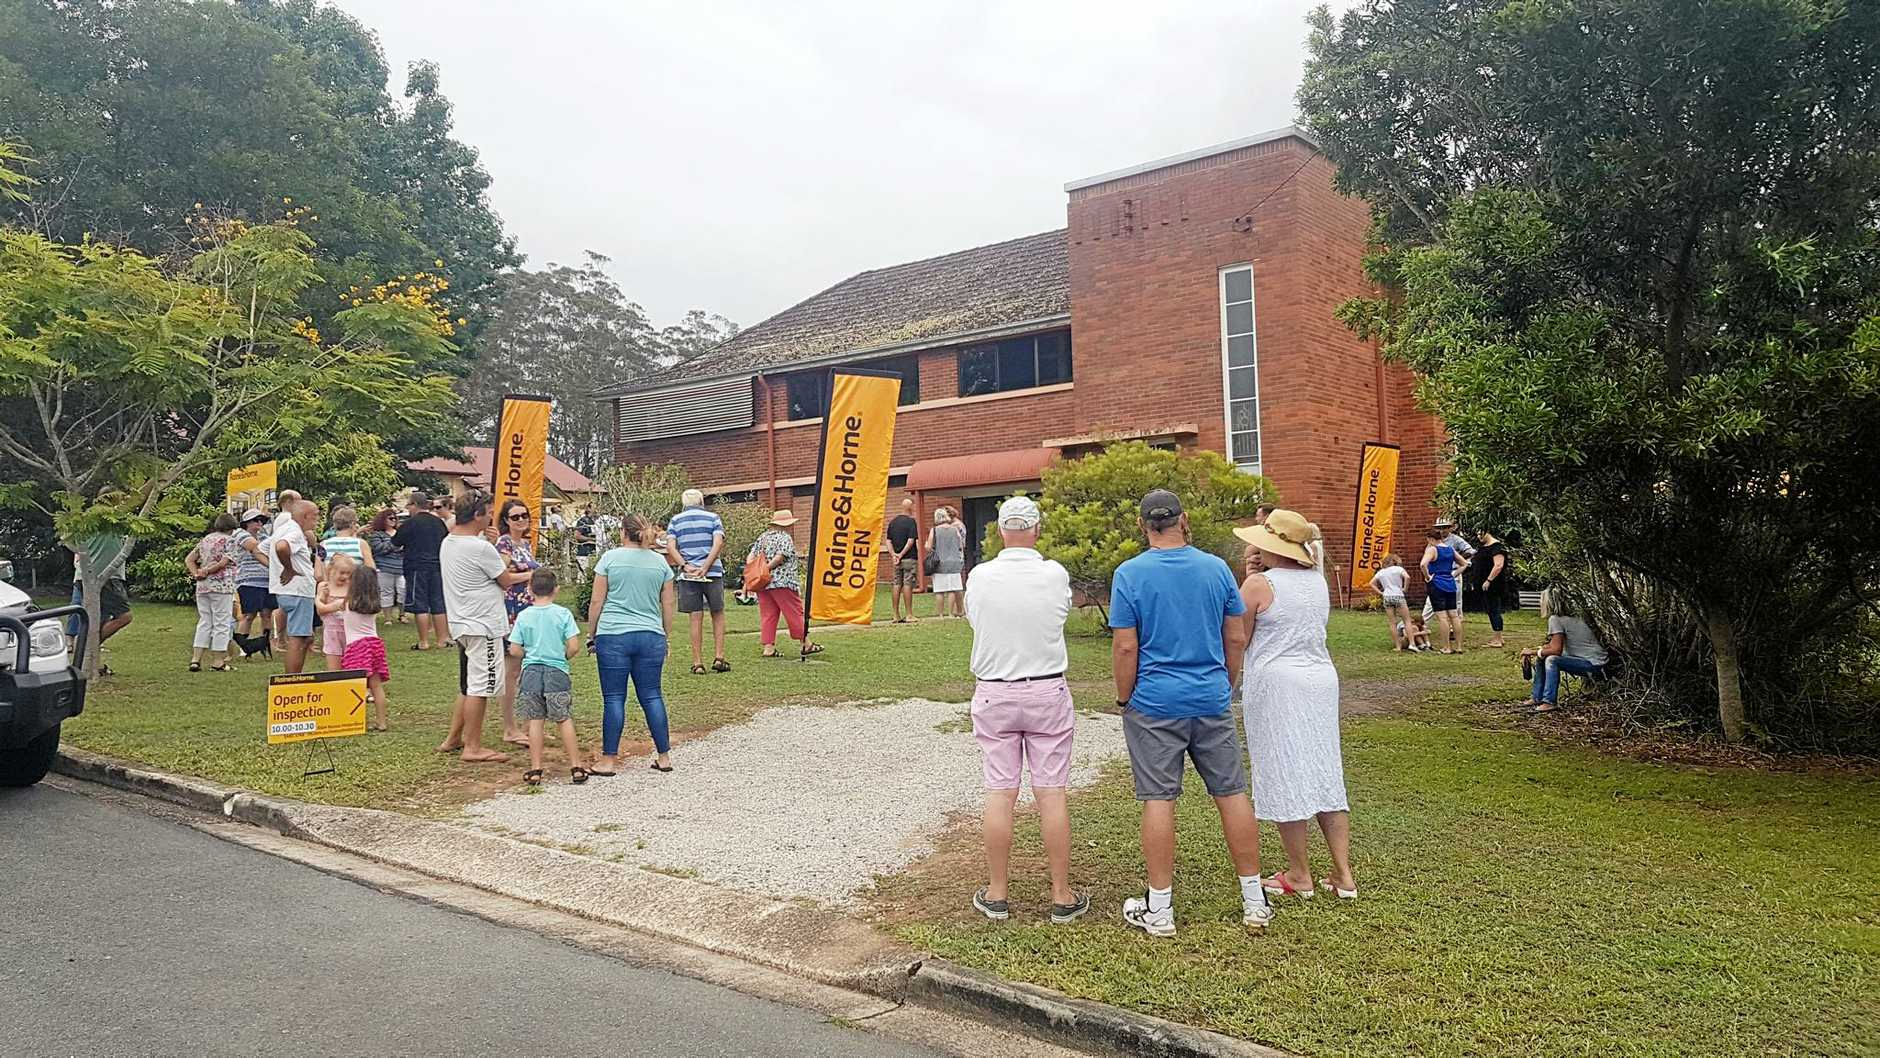 SUNDAY SERVICE: The auction of the former Catholic school now a residential property at 3 Church St, Pomona, drew a good crowd and bidding.